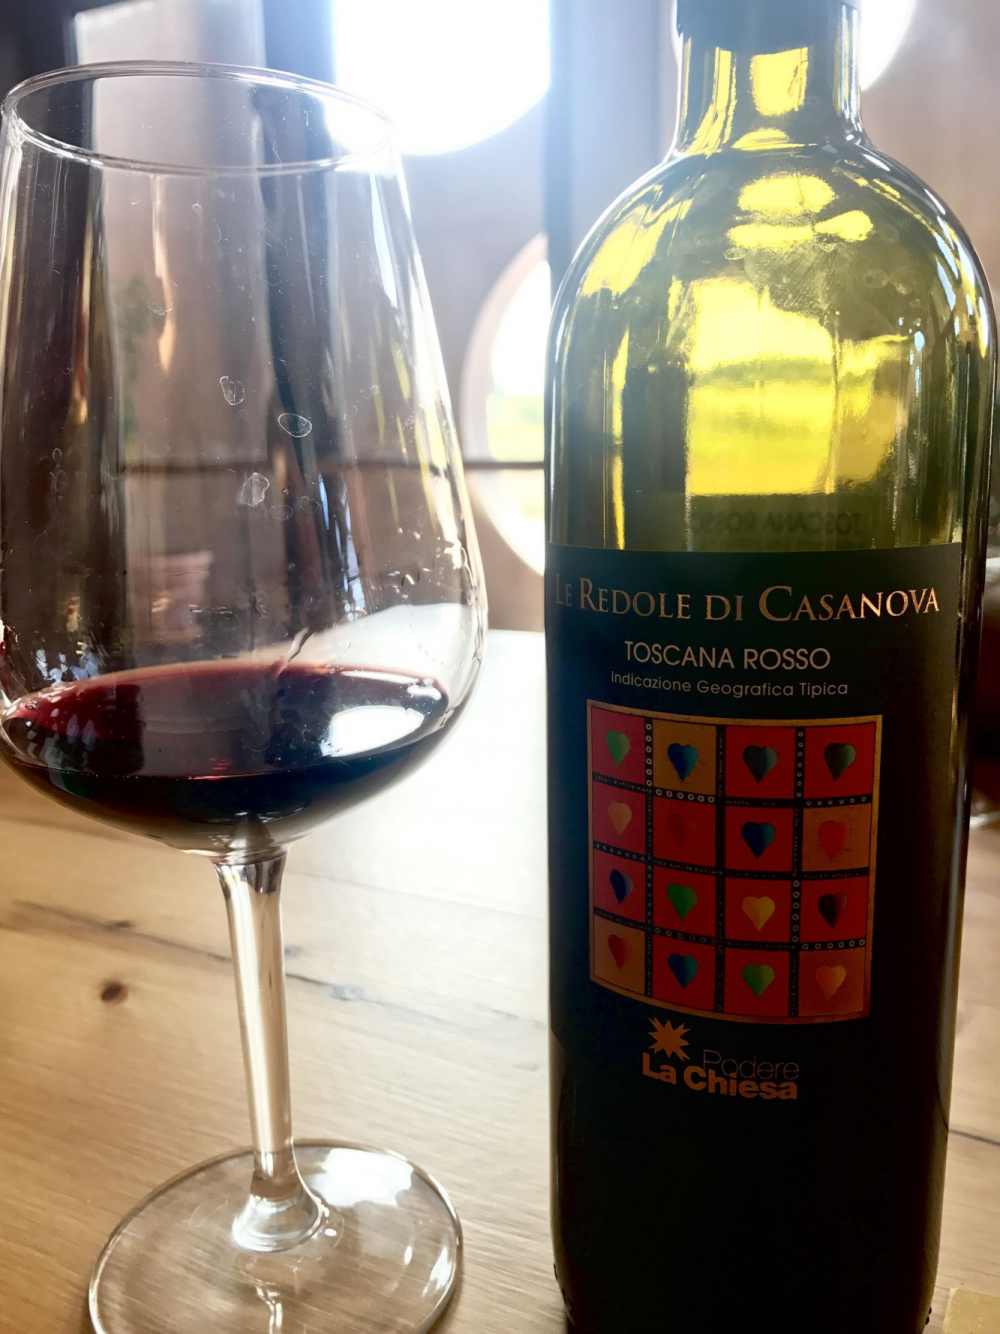 Le Redole 2015 Toscana Rosso IGT